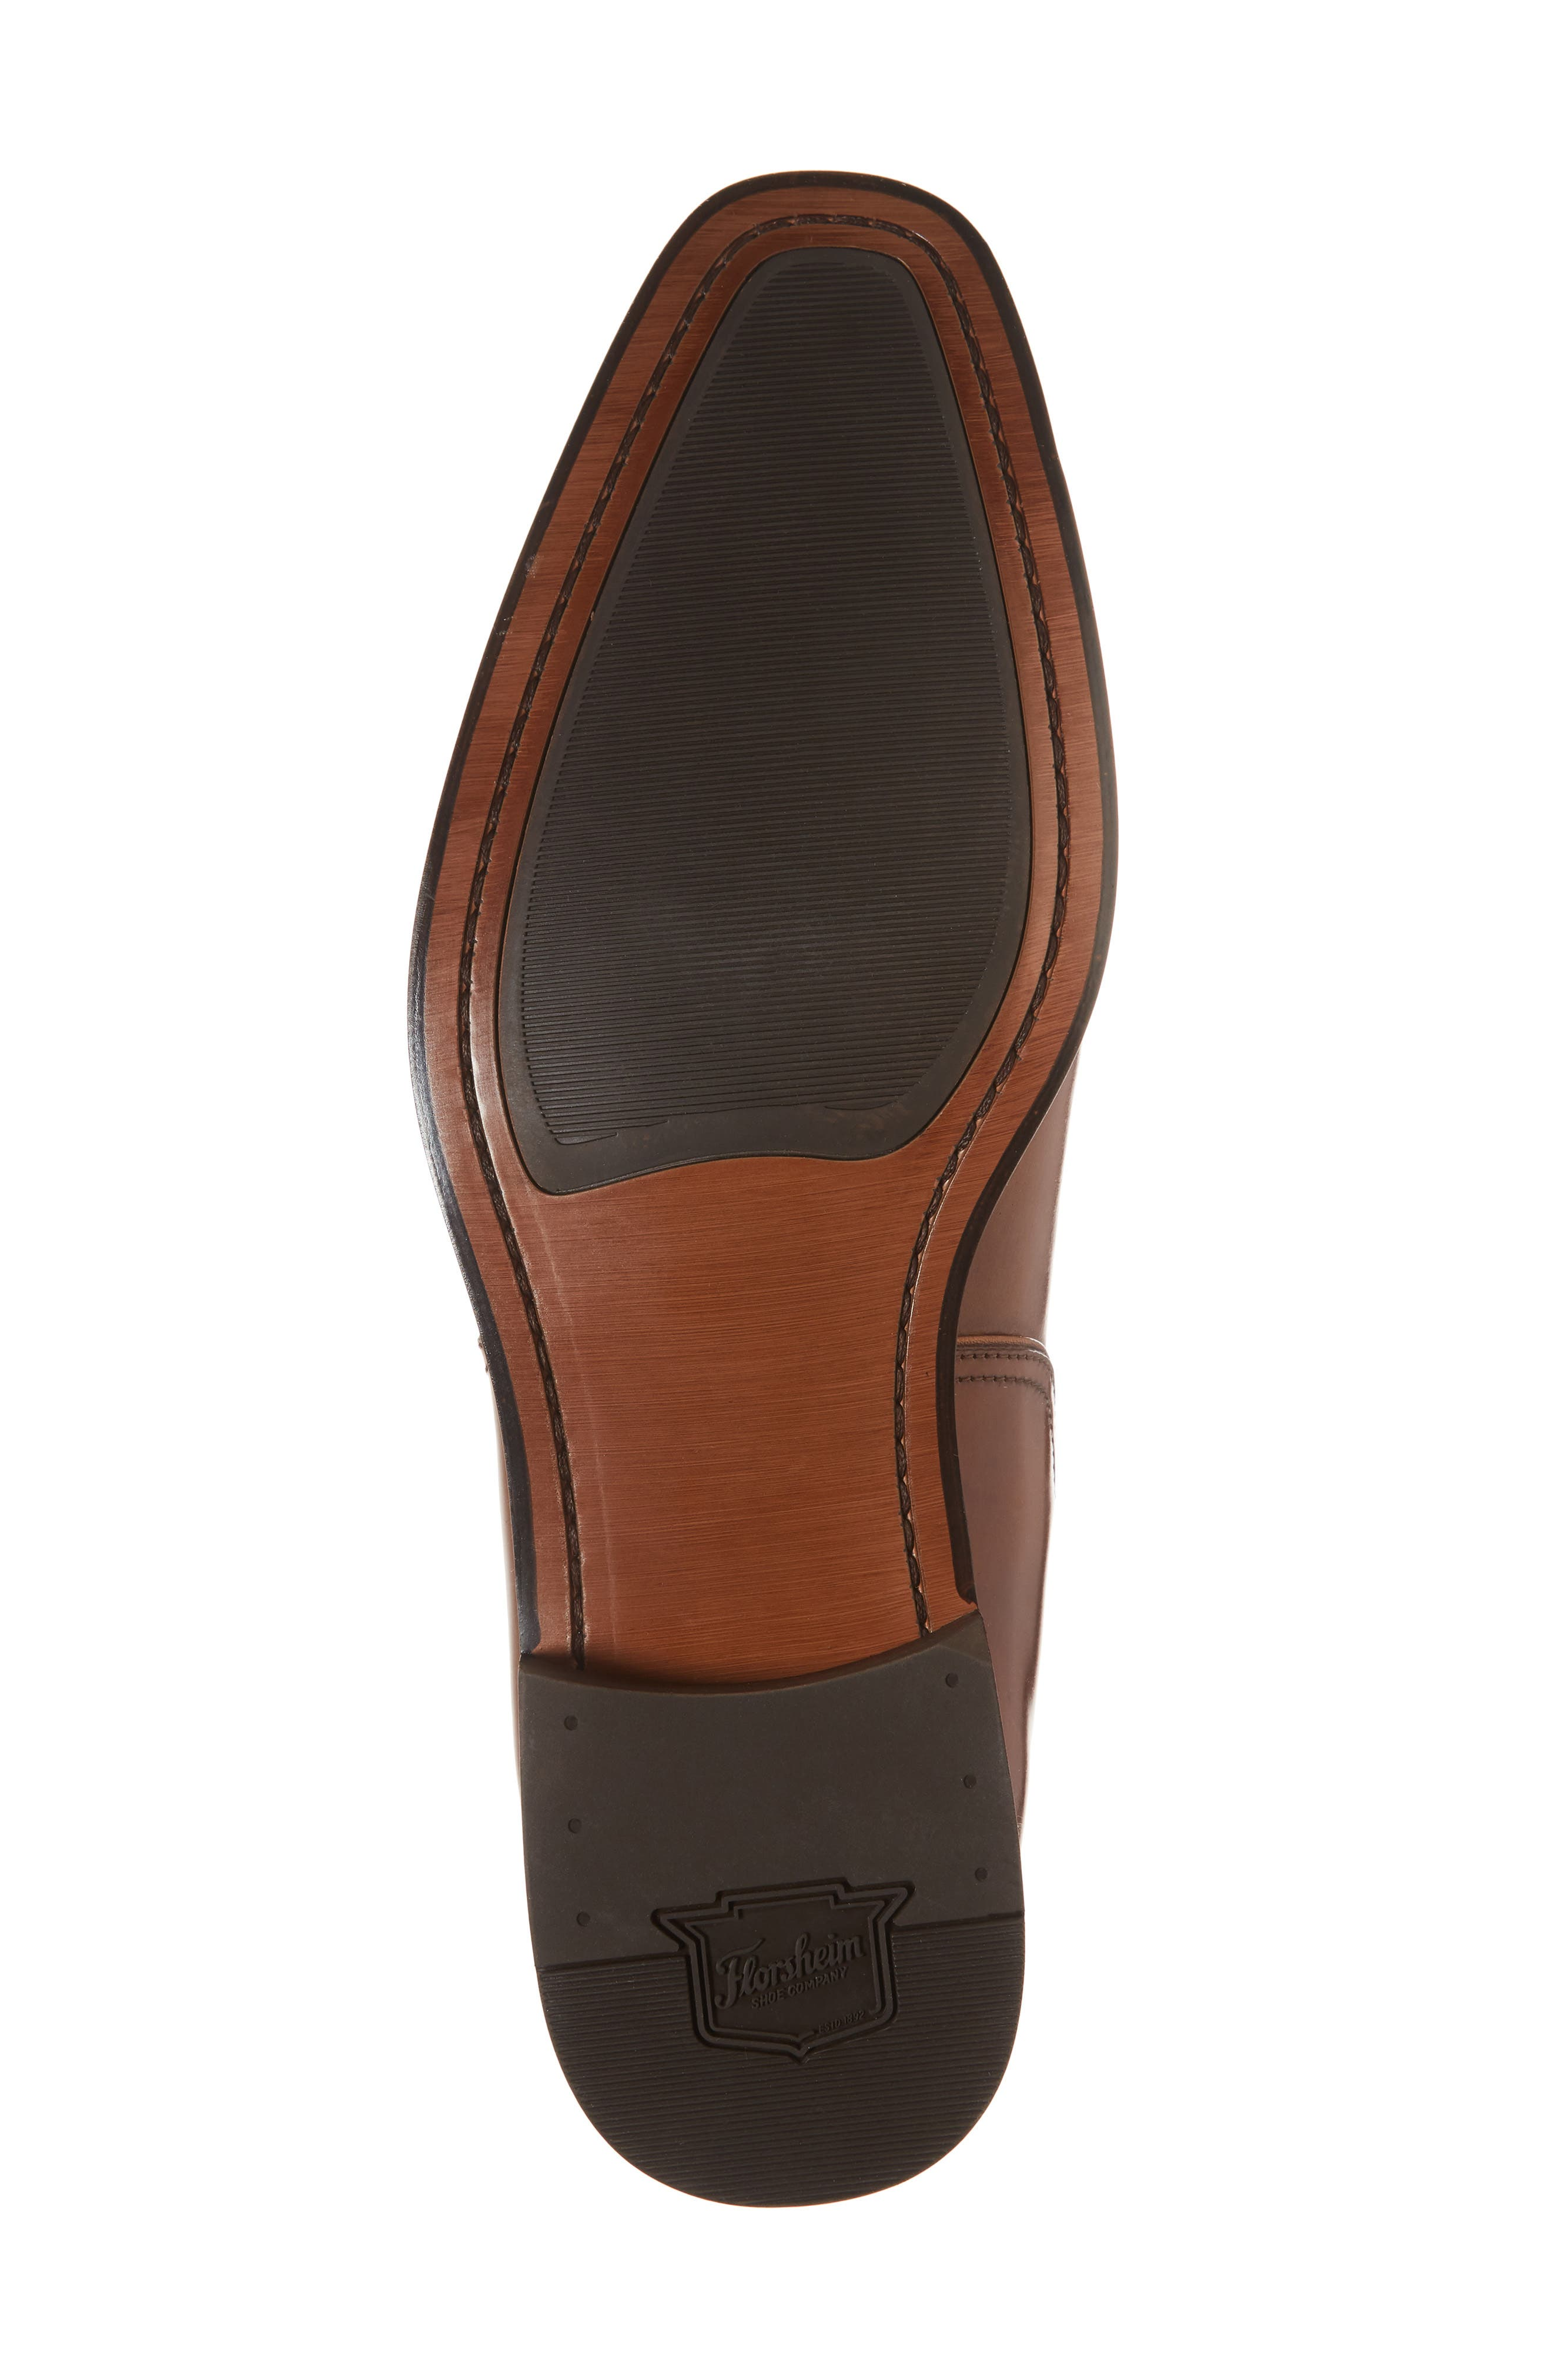 Belfast Chelsea Boot,                             Alternate thumbnail 6, color,                             COGNAC LEATHER